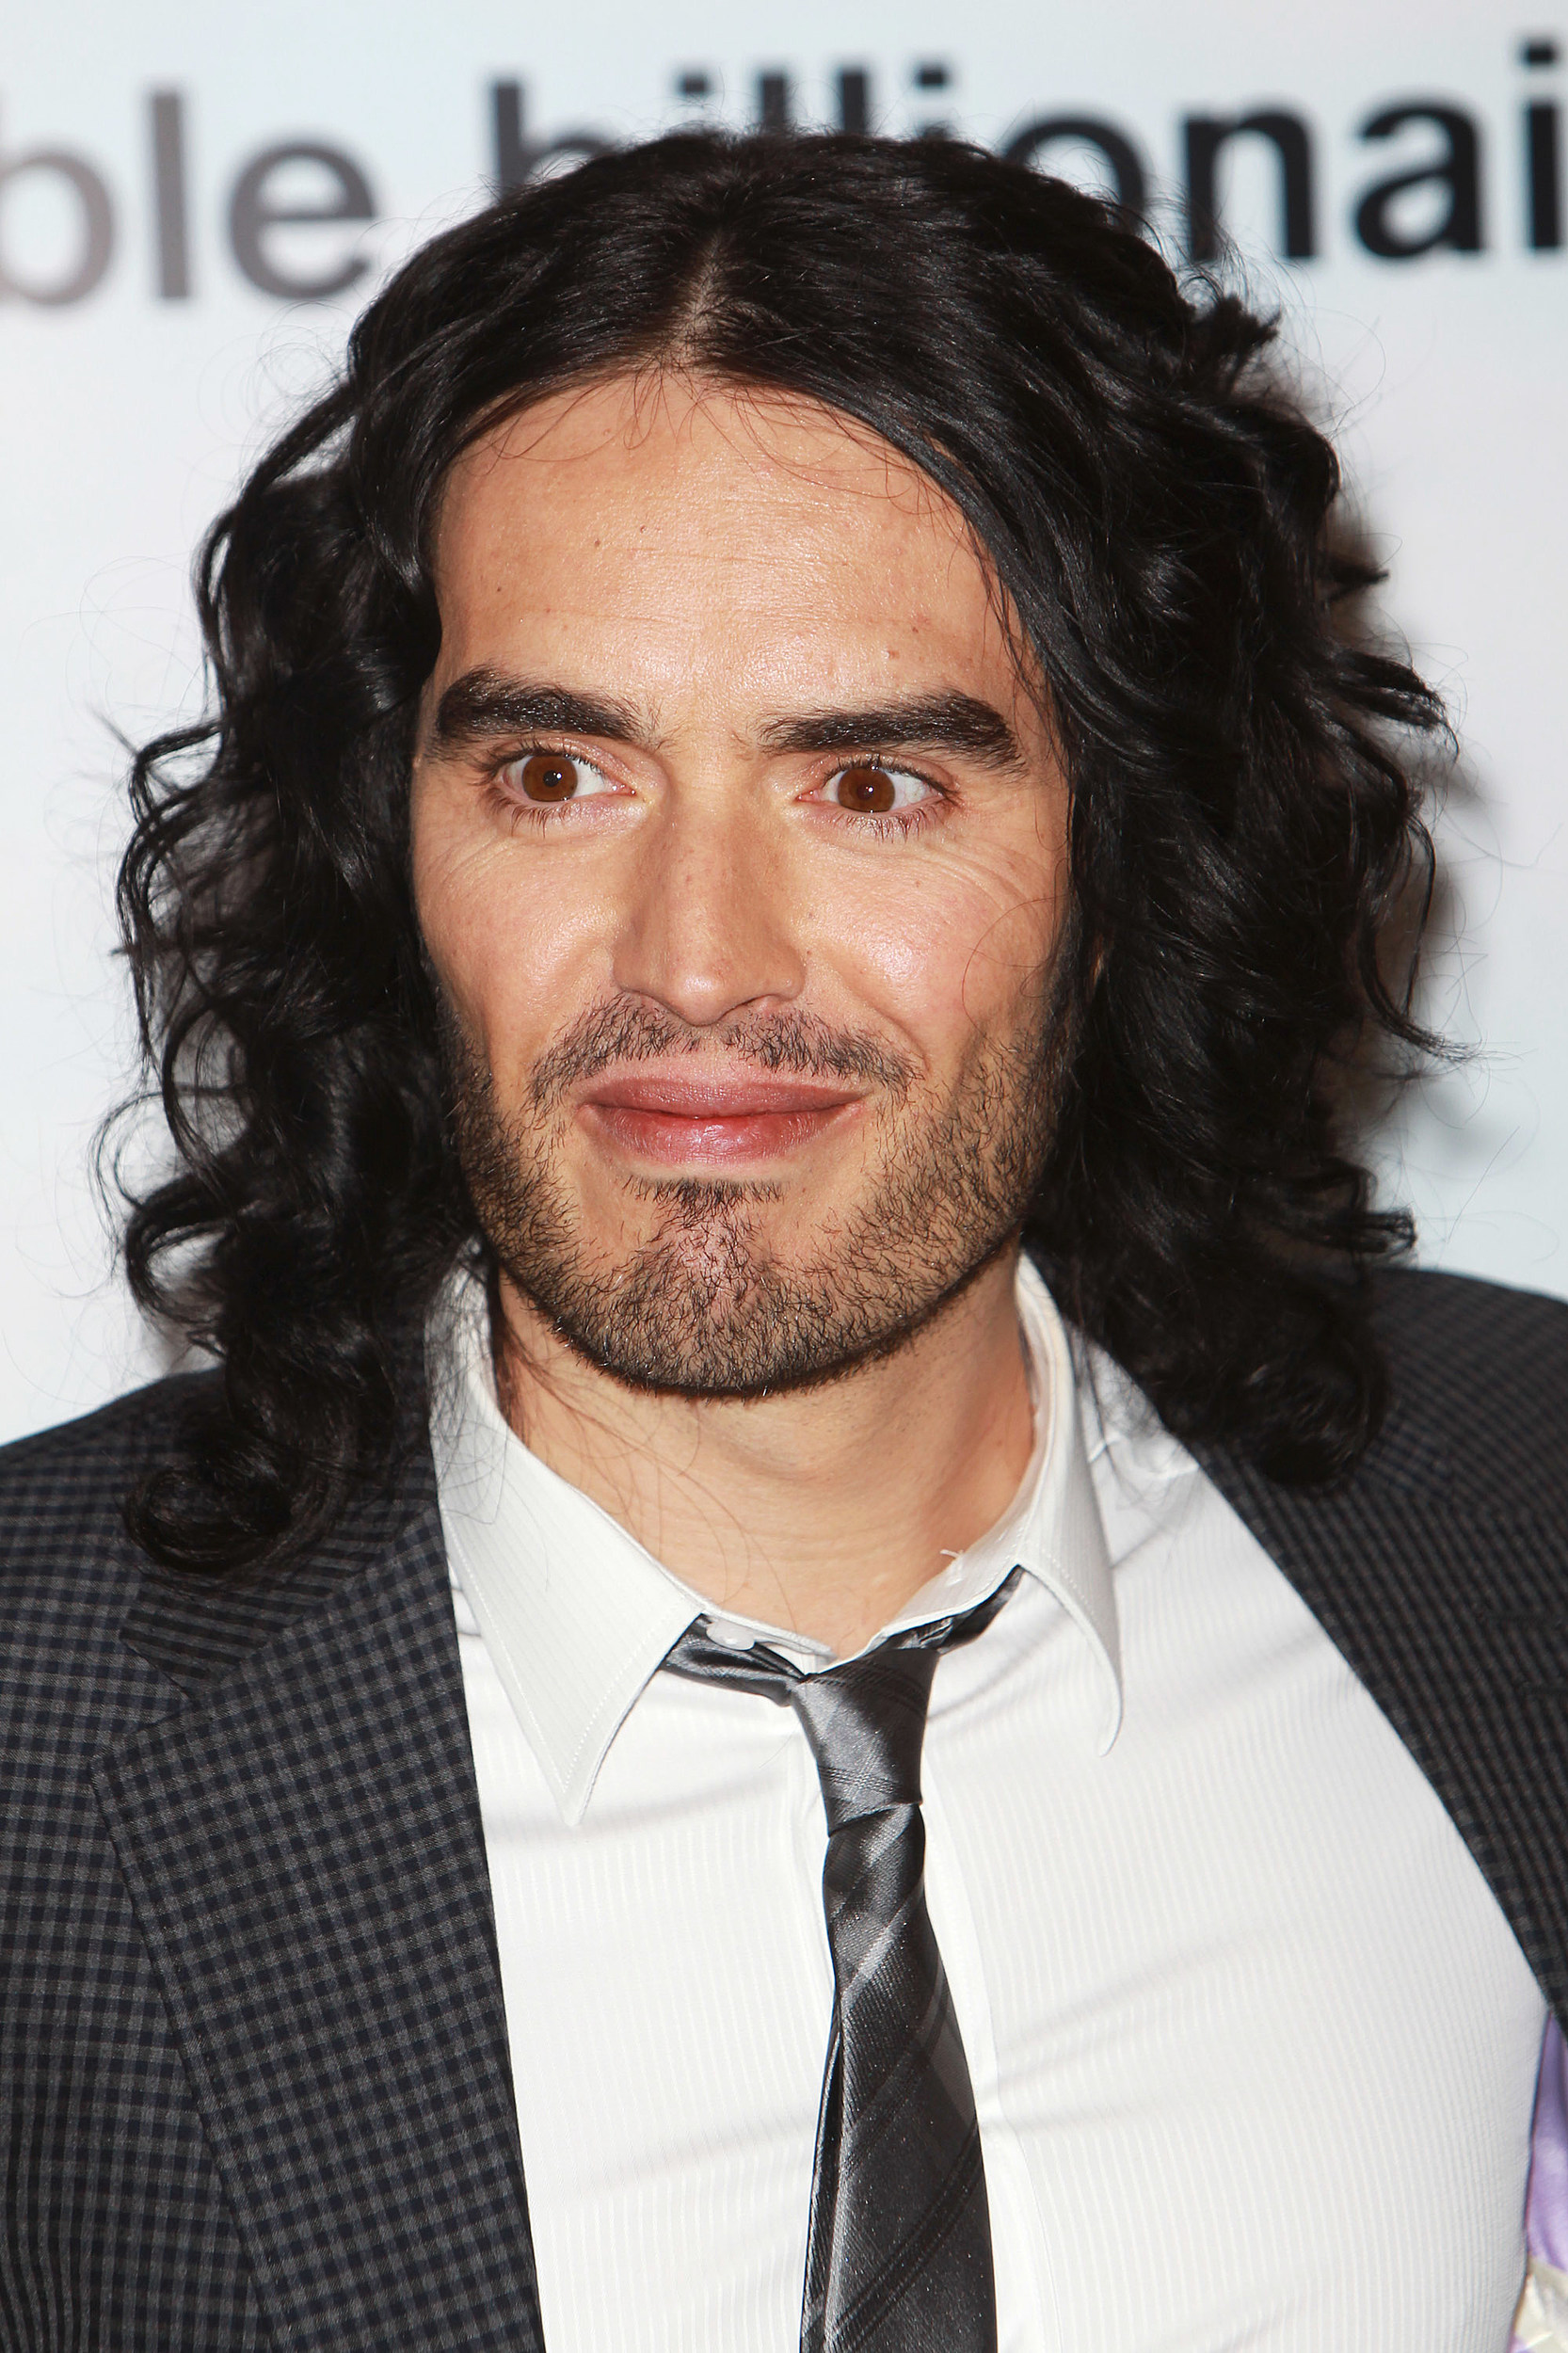 russell brand accentrussell brand height, russell brand laura gallacher, russell brand stand up, russell brand wife, russell brand net worth, russell brand wiki, russell brand scandalous, russell brand book, russell brand snl, russell brand show, russell brand movies, russell brand podcast, russell brand contact, russell brand julien blanc, russell brand jimmy fallon, russell brand nationality, russell brand my booky wook, russell brand tattoos, russell brand films, russell brand accent